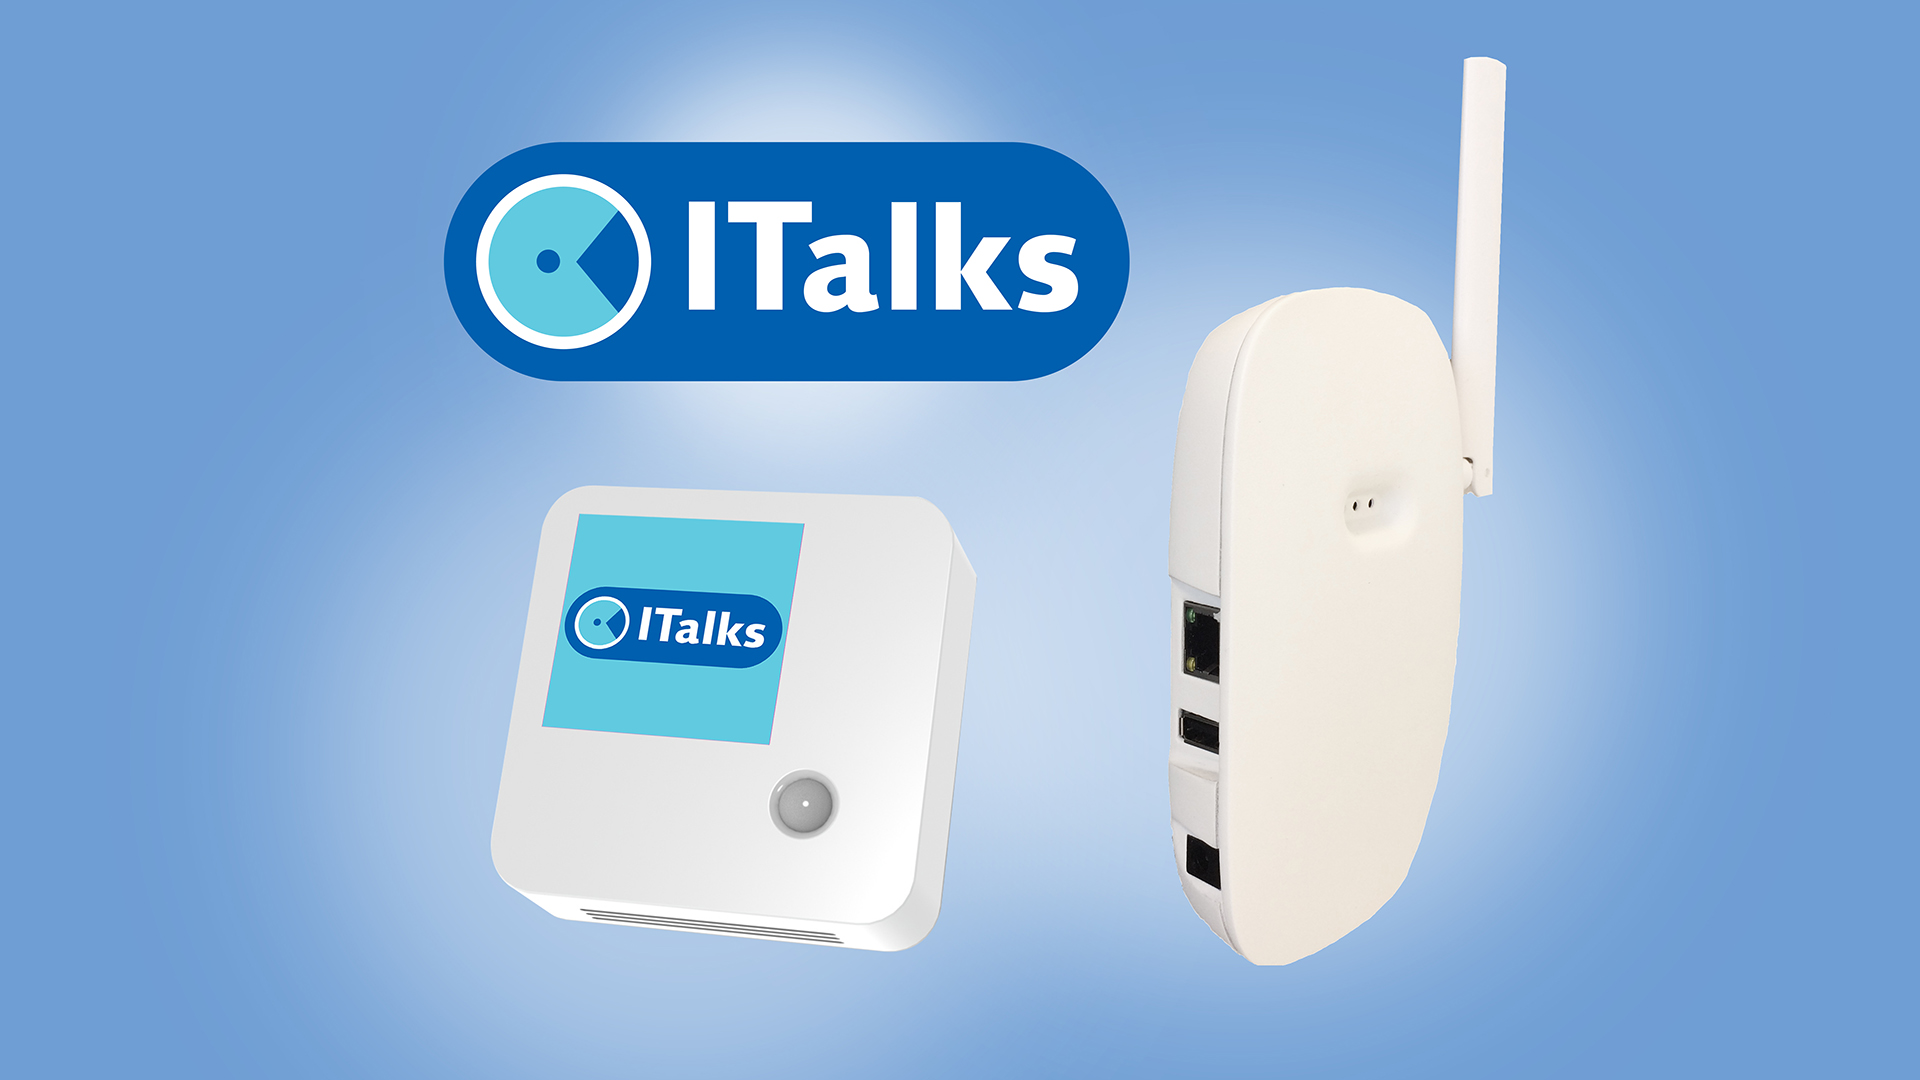 ITalks IoT package Smart Building | ITalks IoT suite, Smart building | Product | MCS